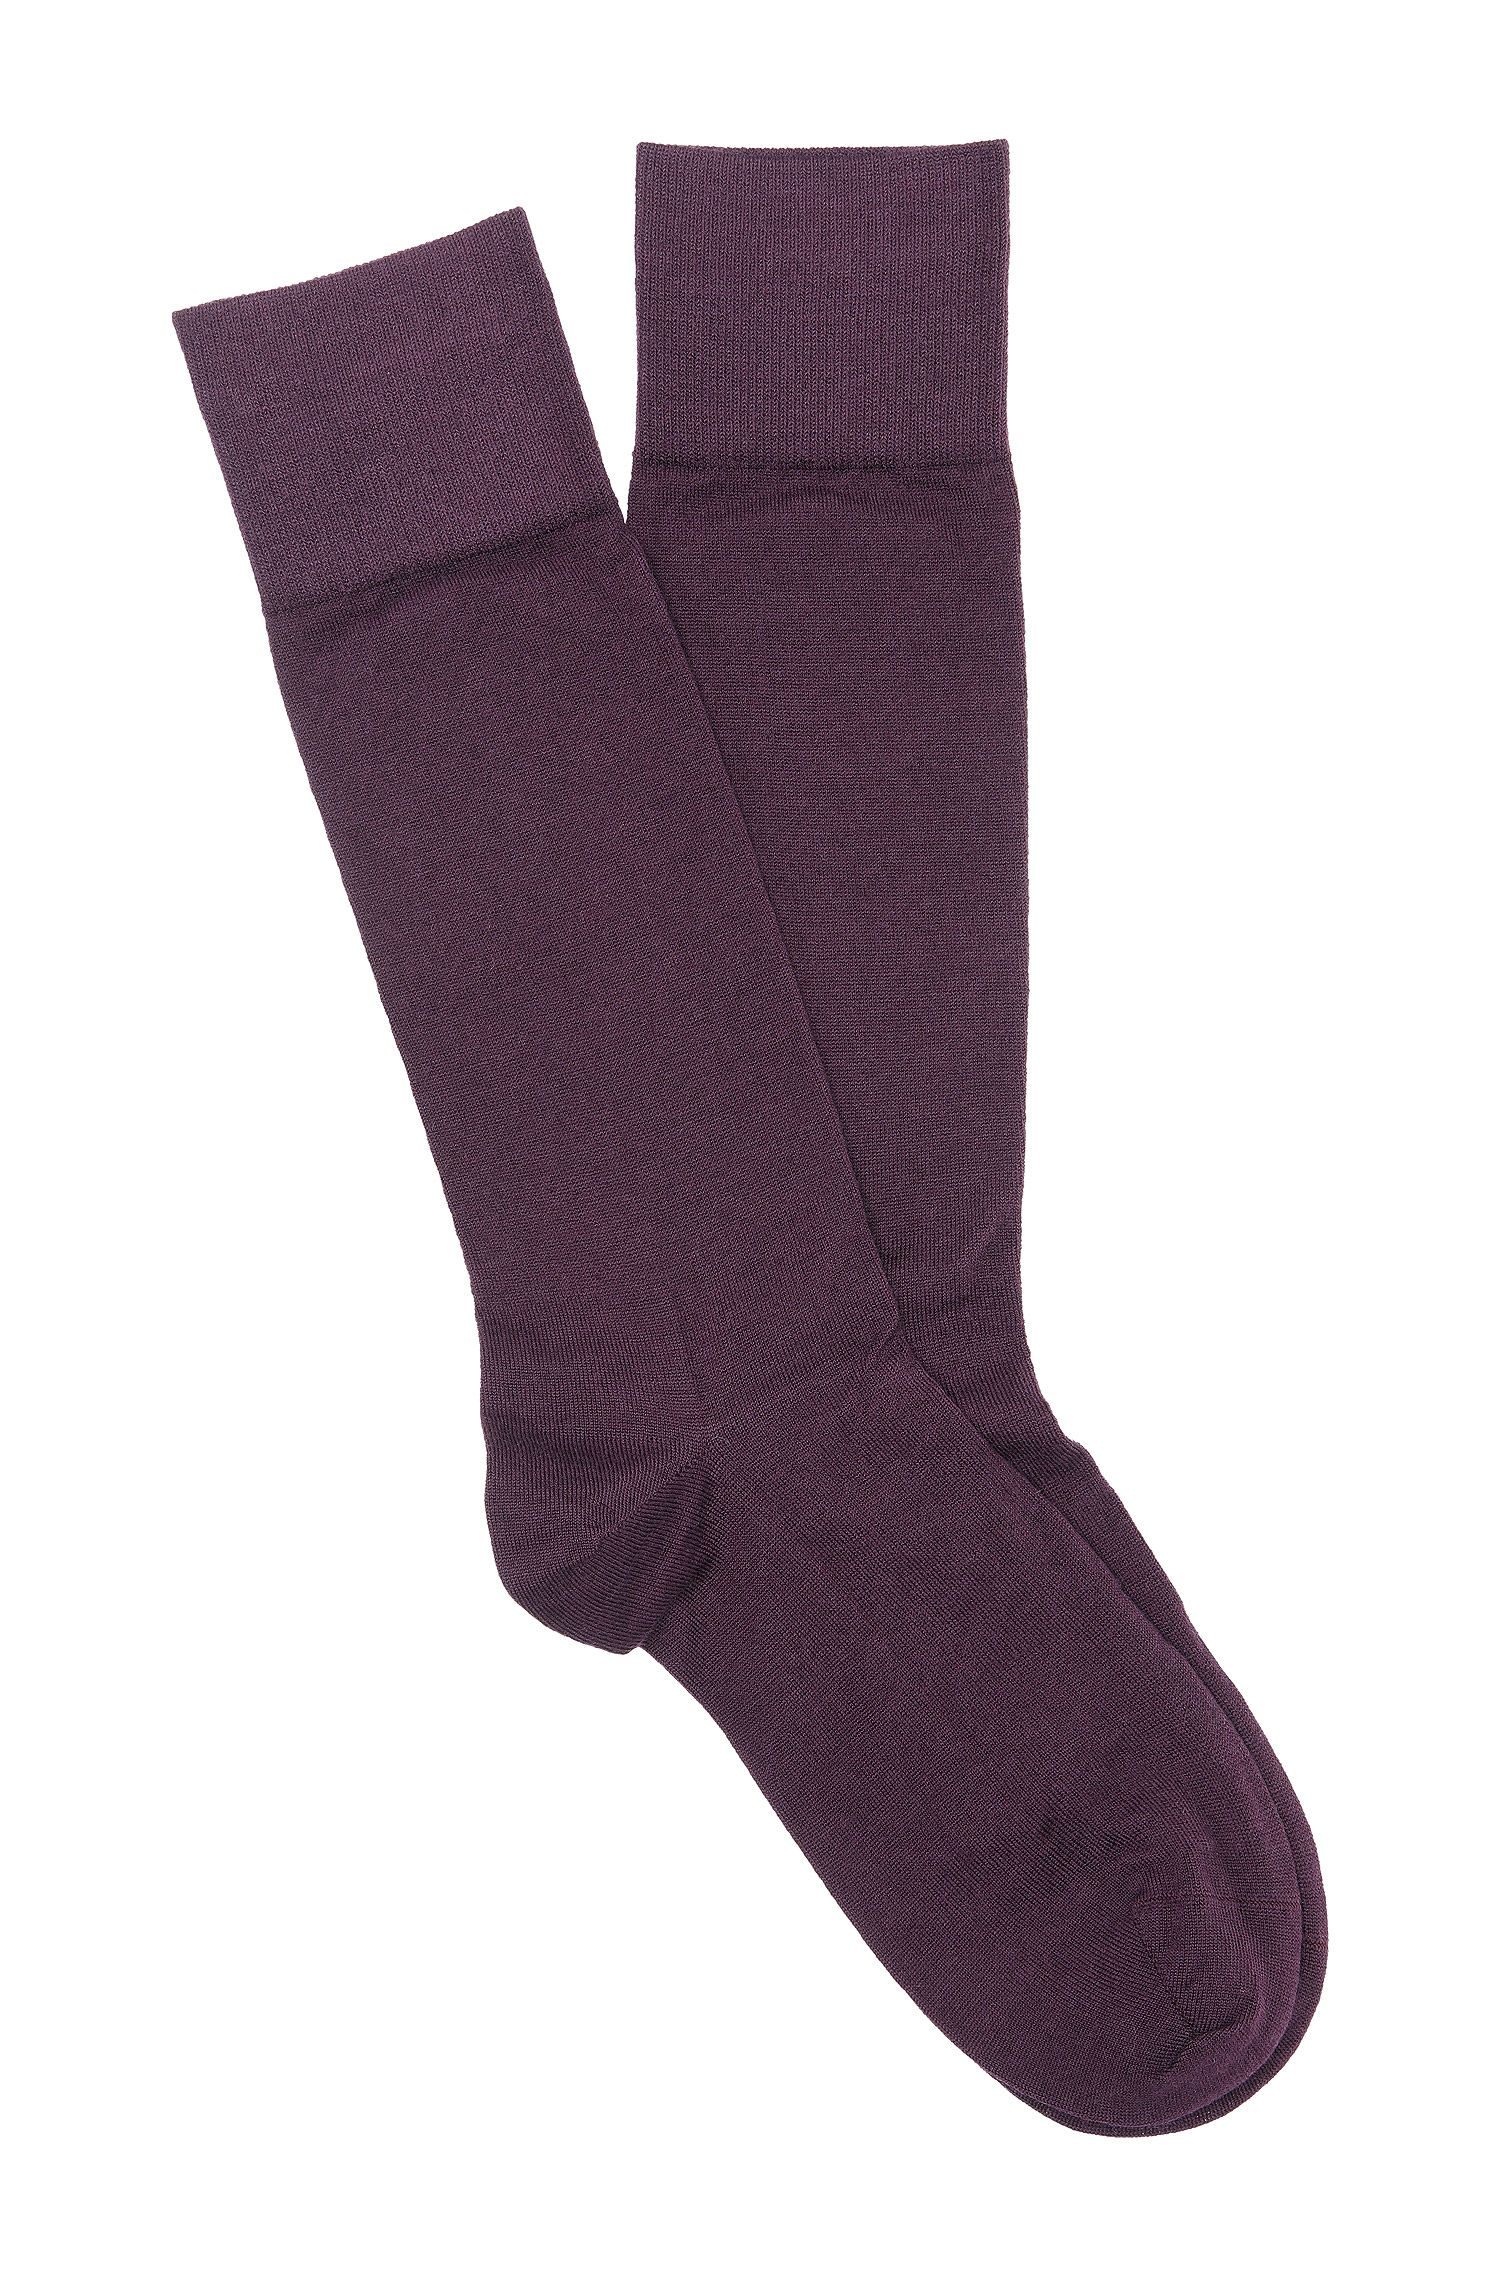 Socks 'TL Cashmere RS' in cashmere blend